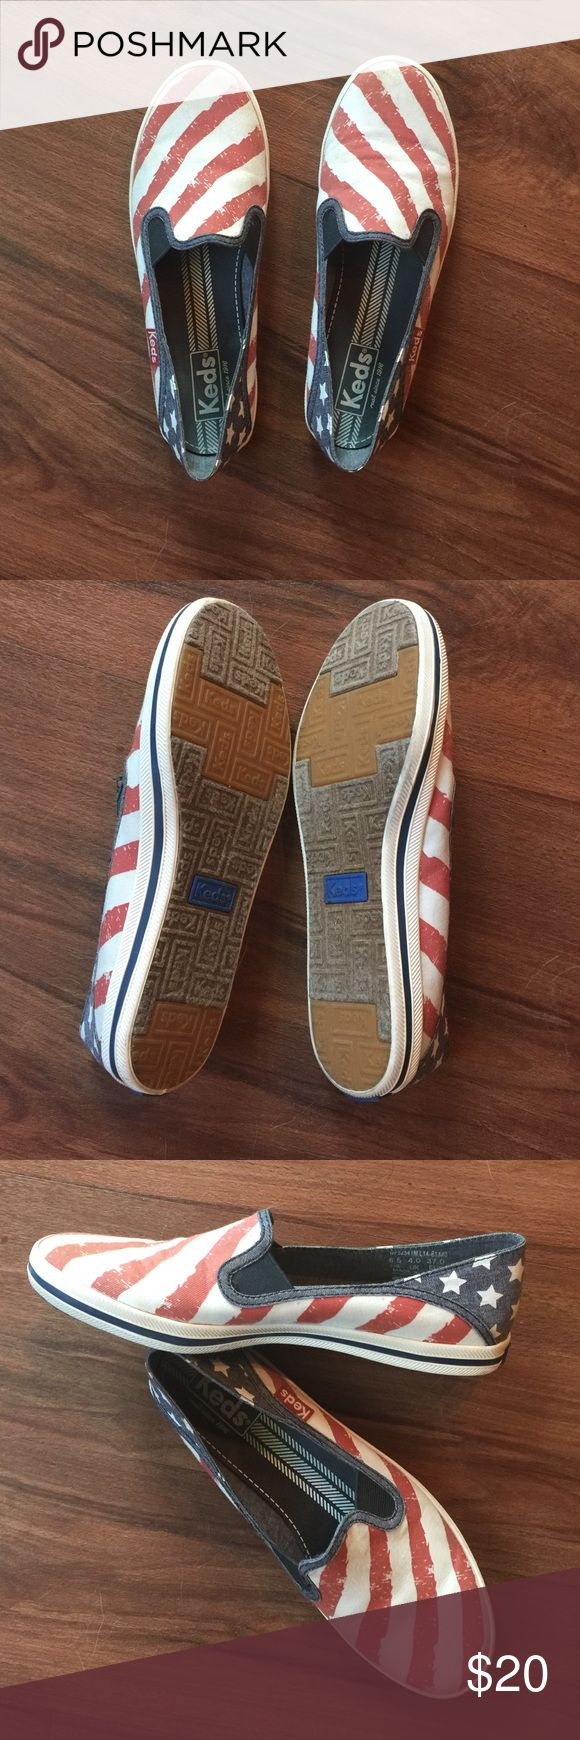 Brand new, no tags, never worn American Keds I bought these online and they are half a size too big. Never have been worn outside. Super cute. Canvas material. Slip on. Keds Shoes Flats & Loafers